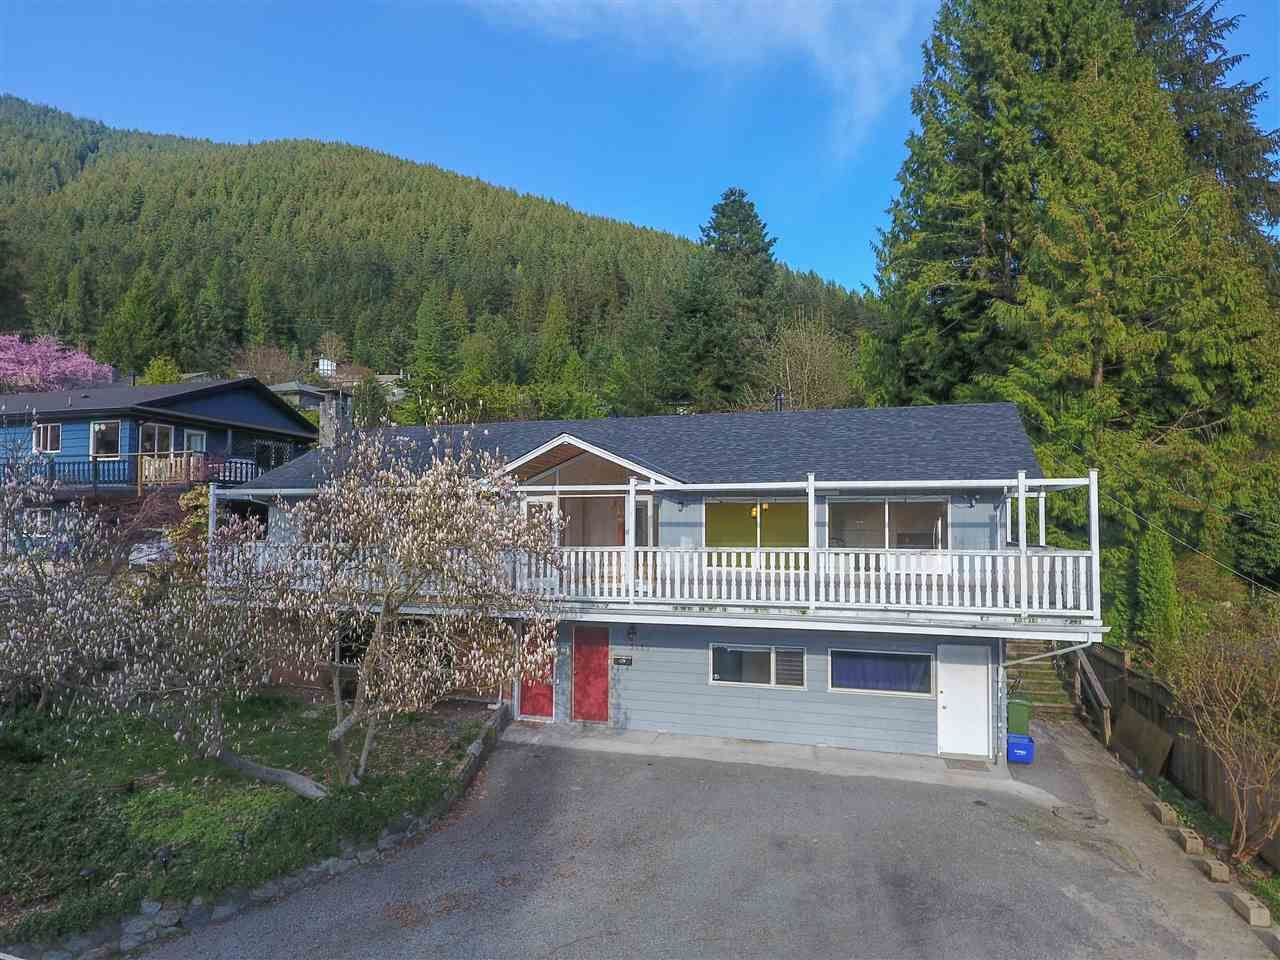 Main Photo: 5050 RANGER AVENUE in North Vancouver: Canyon Heights NV House for sale : MLS®# R2157779